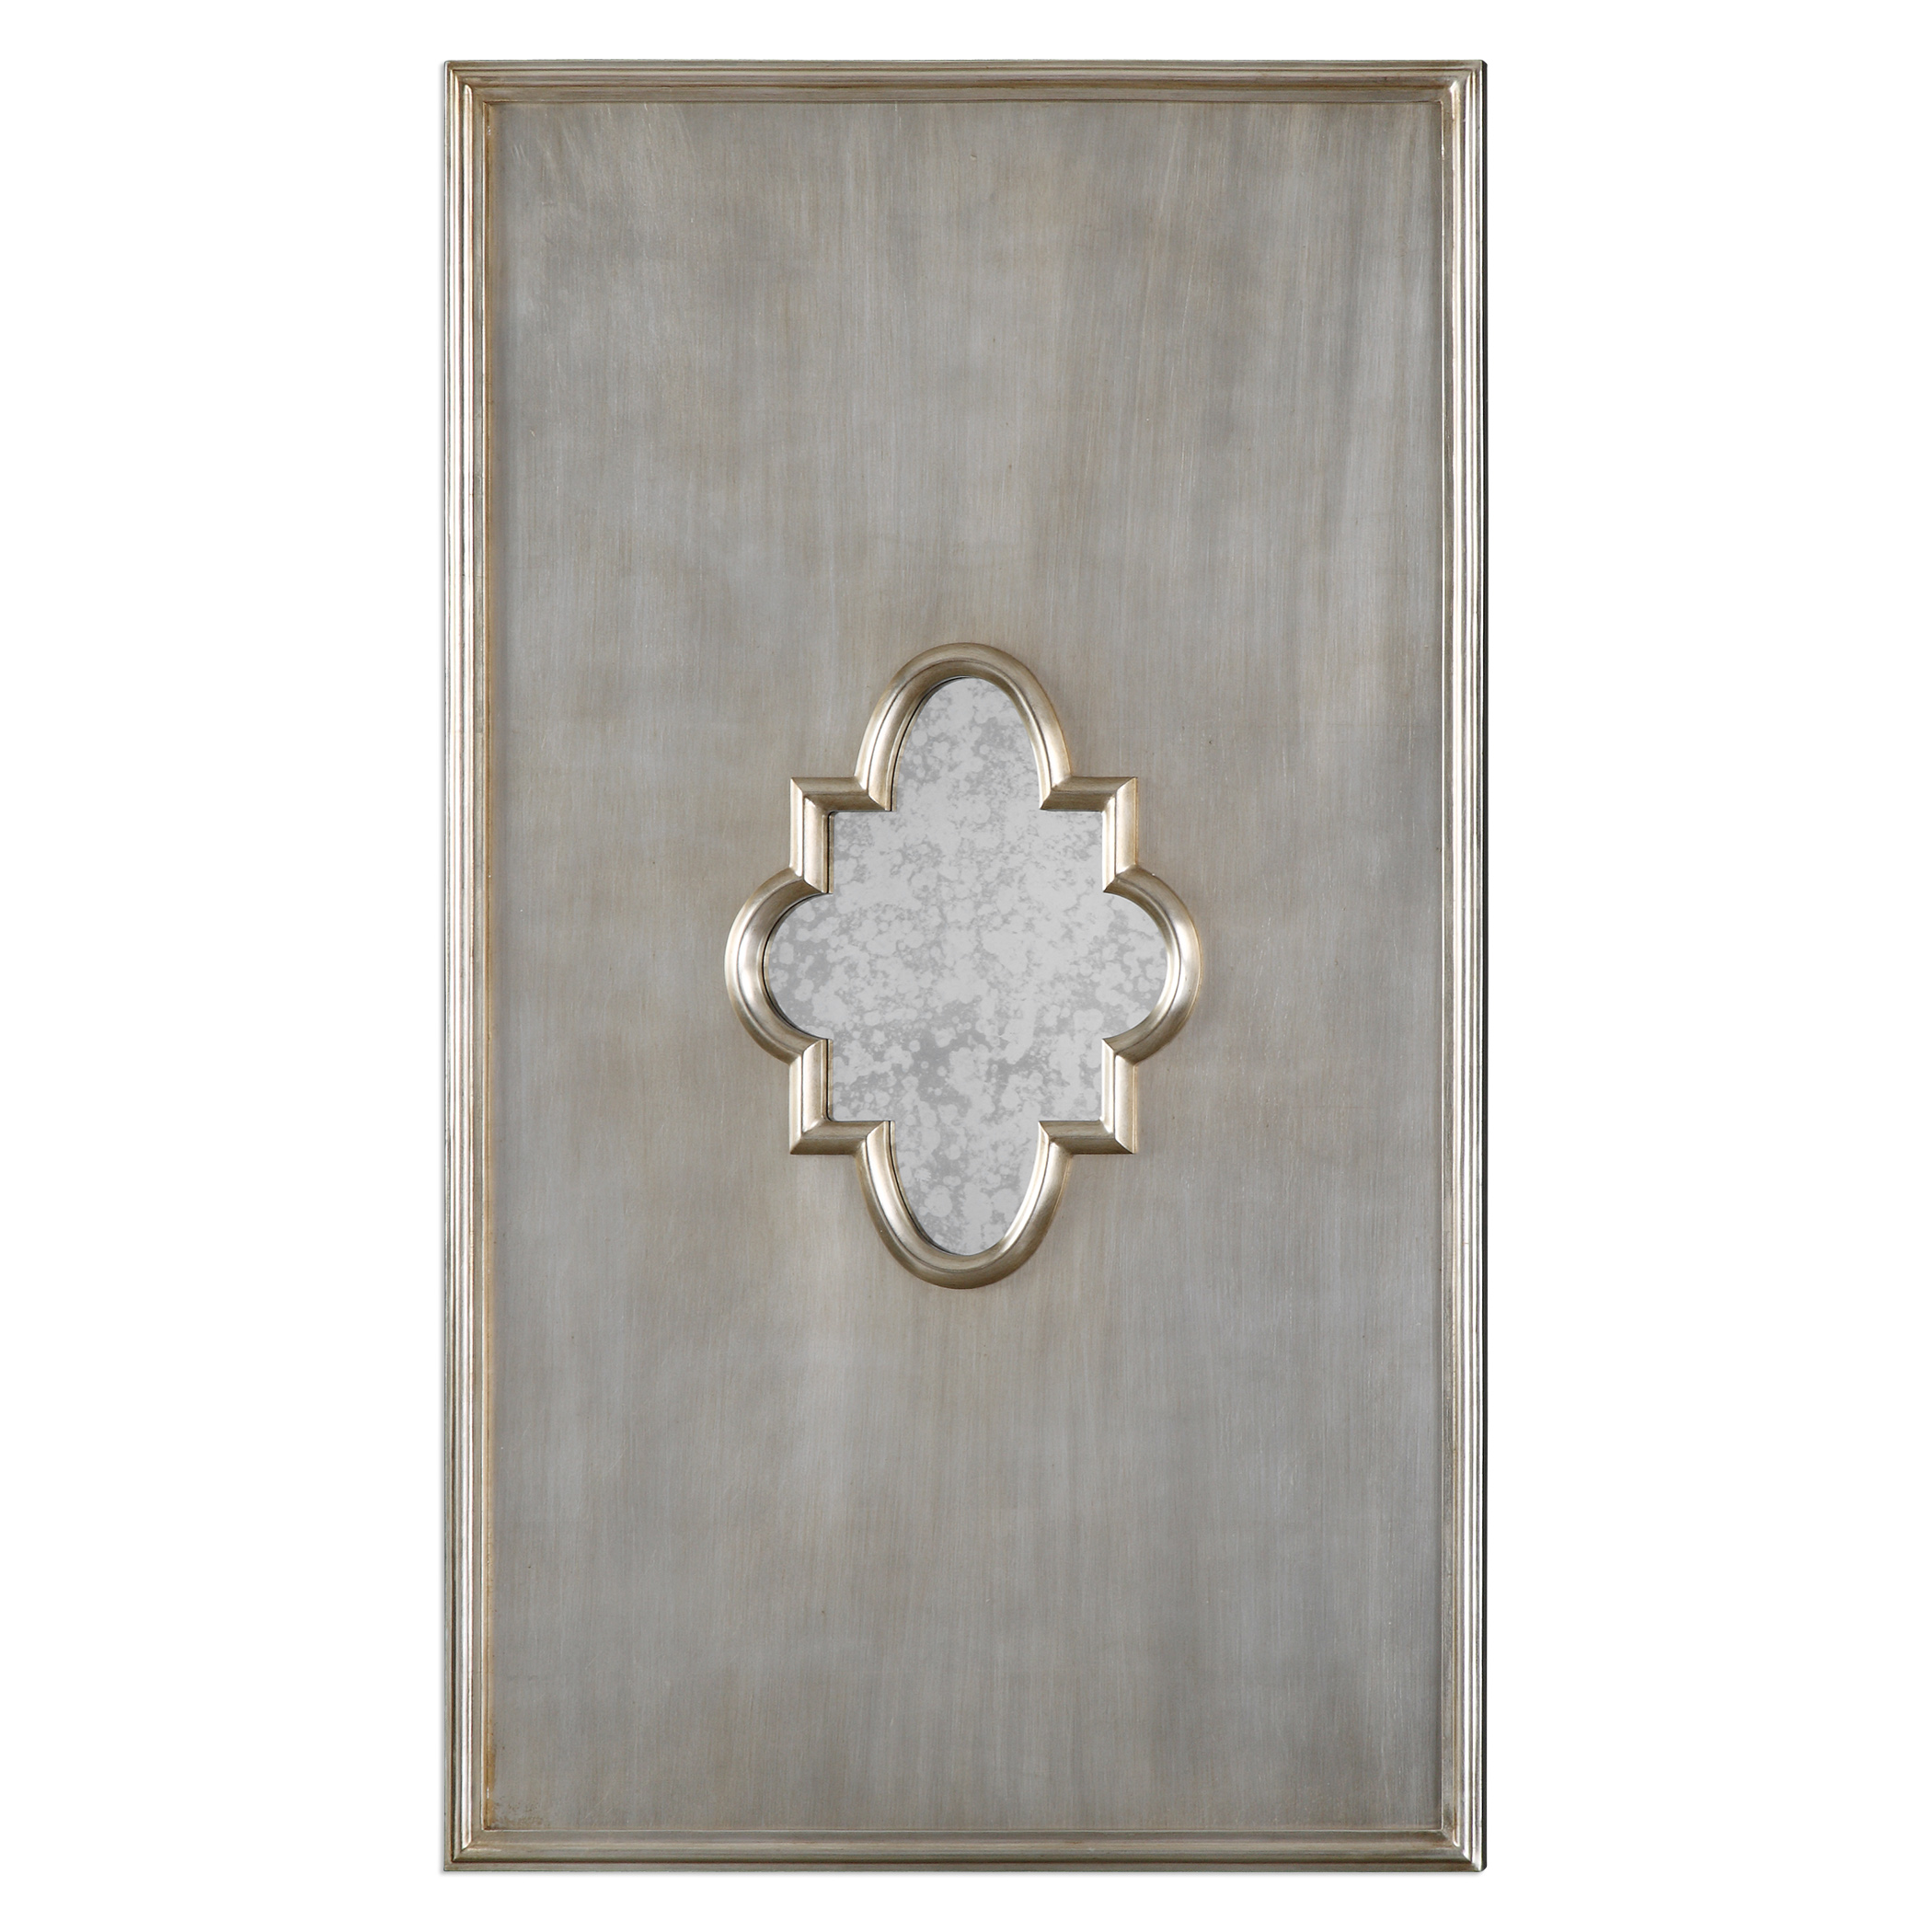 Uttermost Mirrors Gardanne Silver Leaf Antique Mirror - Item Number: 09036